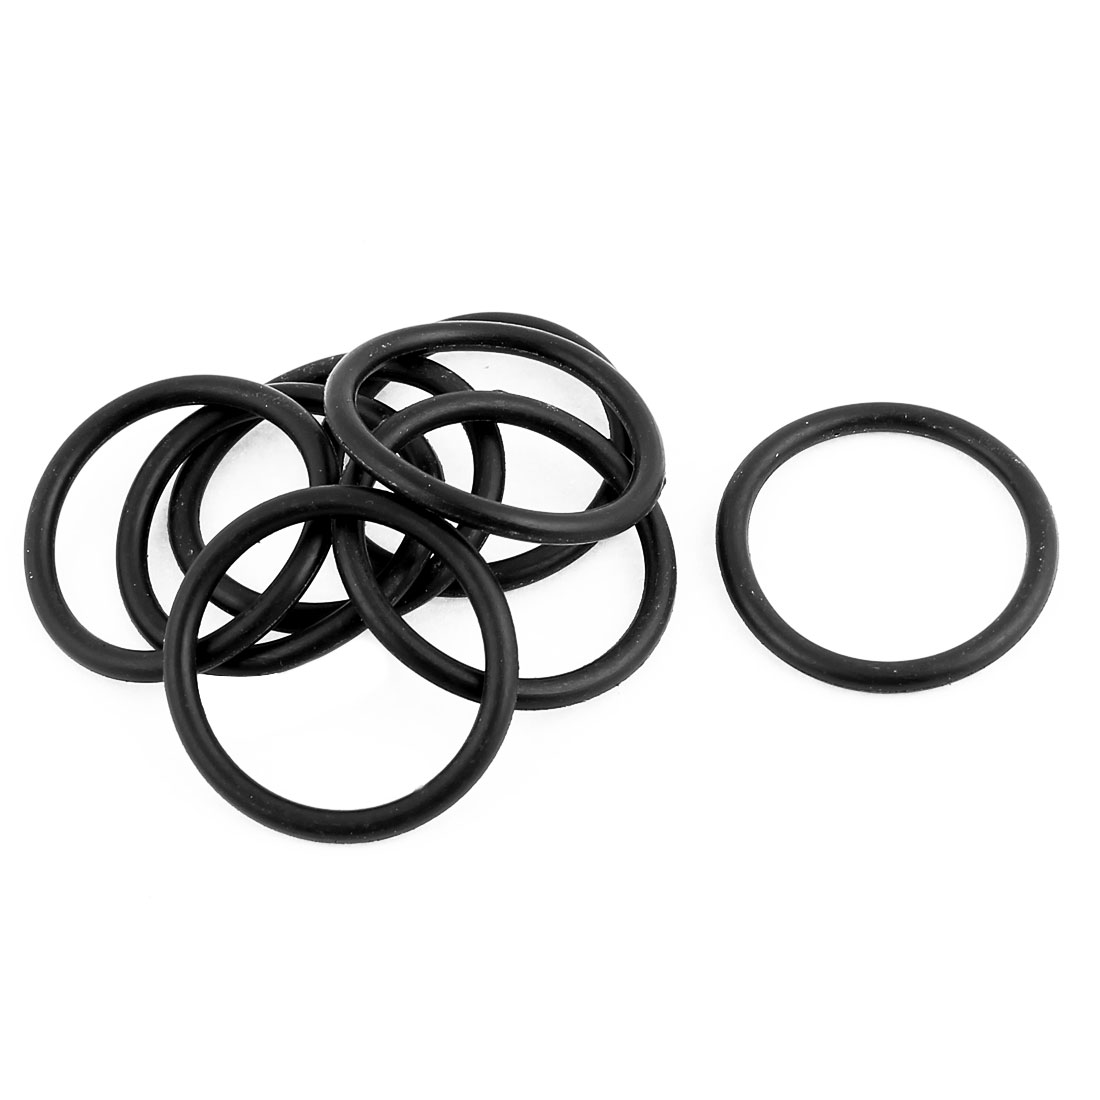 10 Pcs 33mm OD 3mm Thickness O Type Sealing Ring Black Rubber